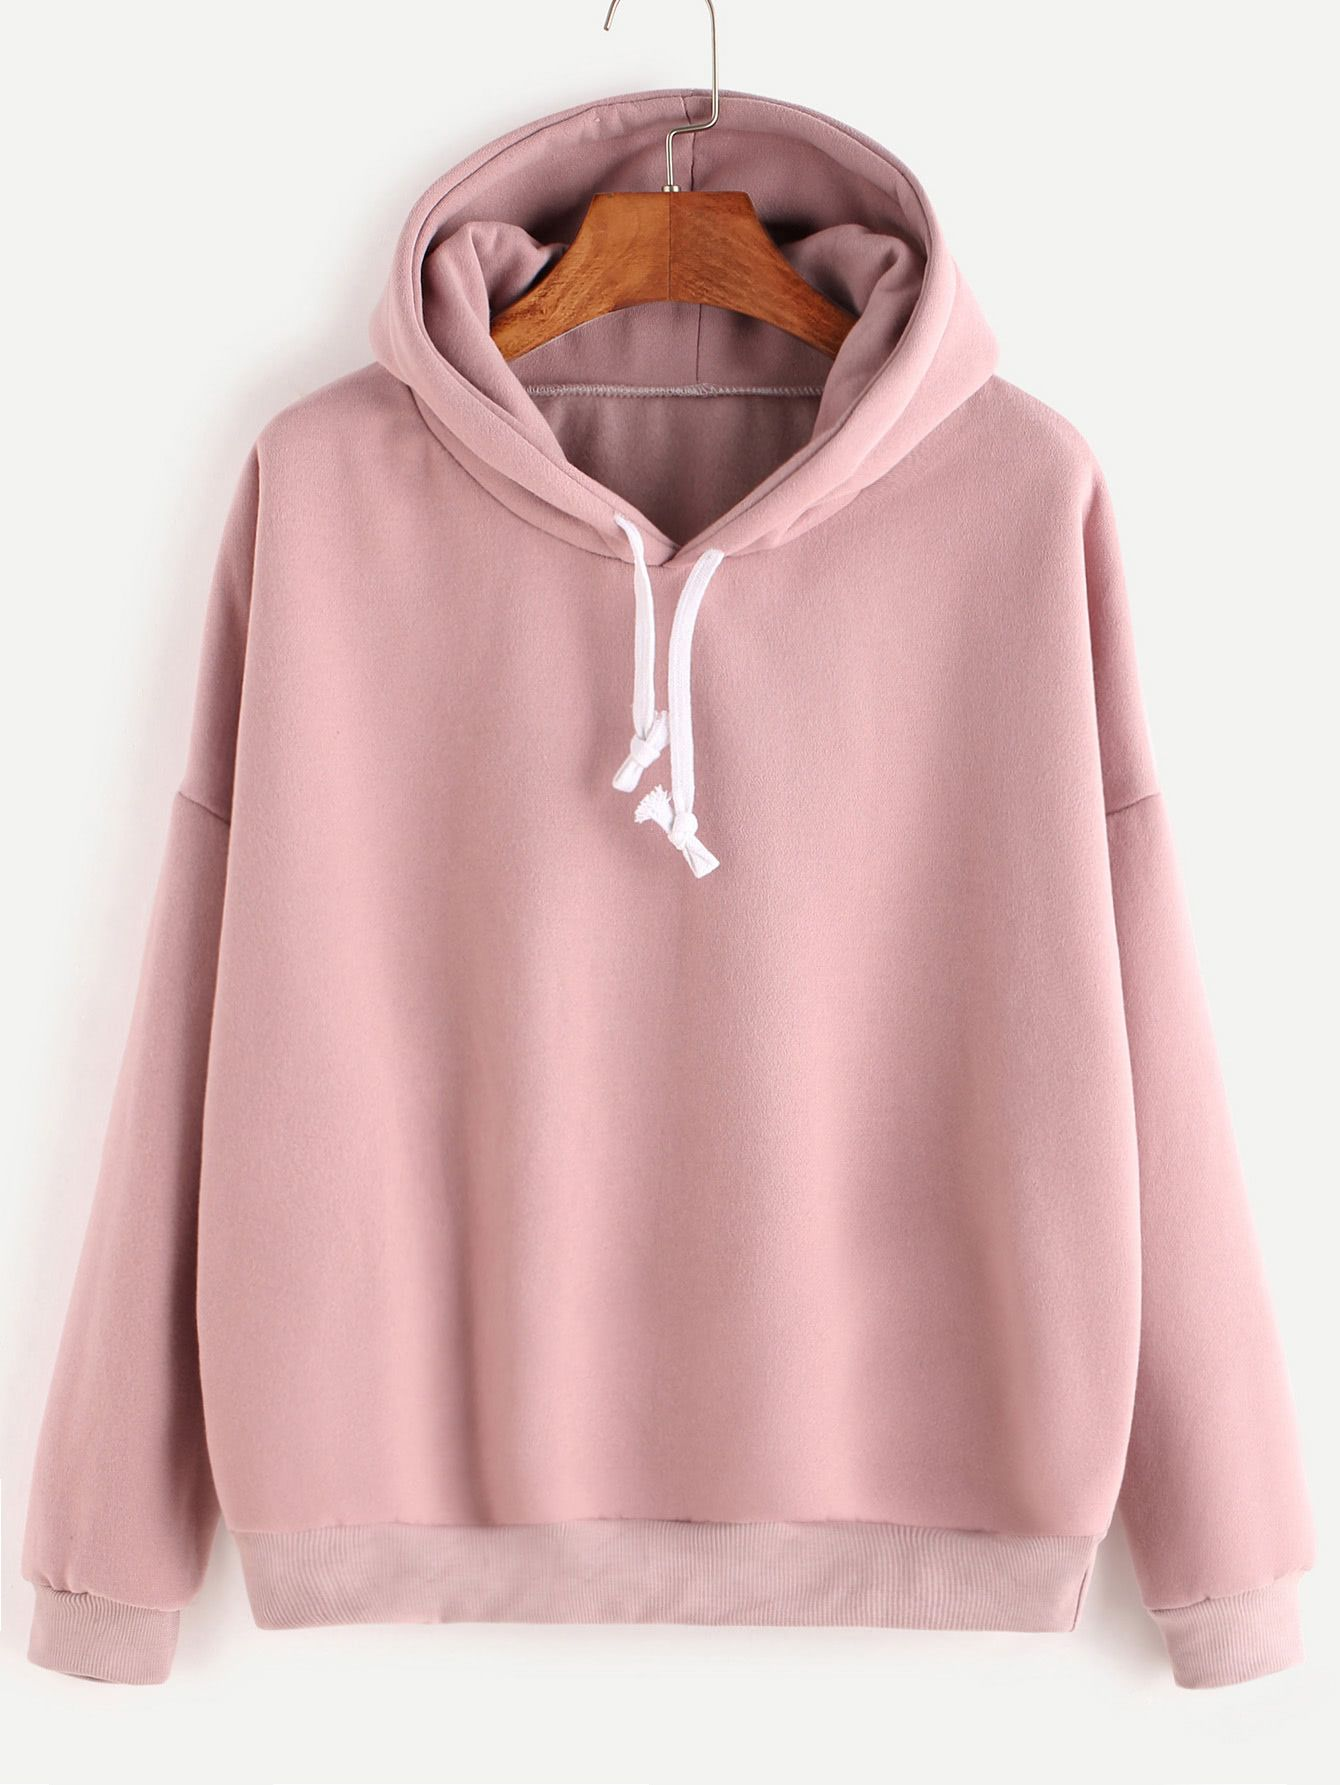 3a440460d9fd Shop Hooded Drop Shoulder Sweatshirt online. SheIn offers Hooded Drop  Shoulder Sweatshirt   more to fit your fashionable needs.